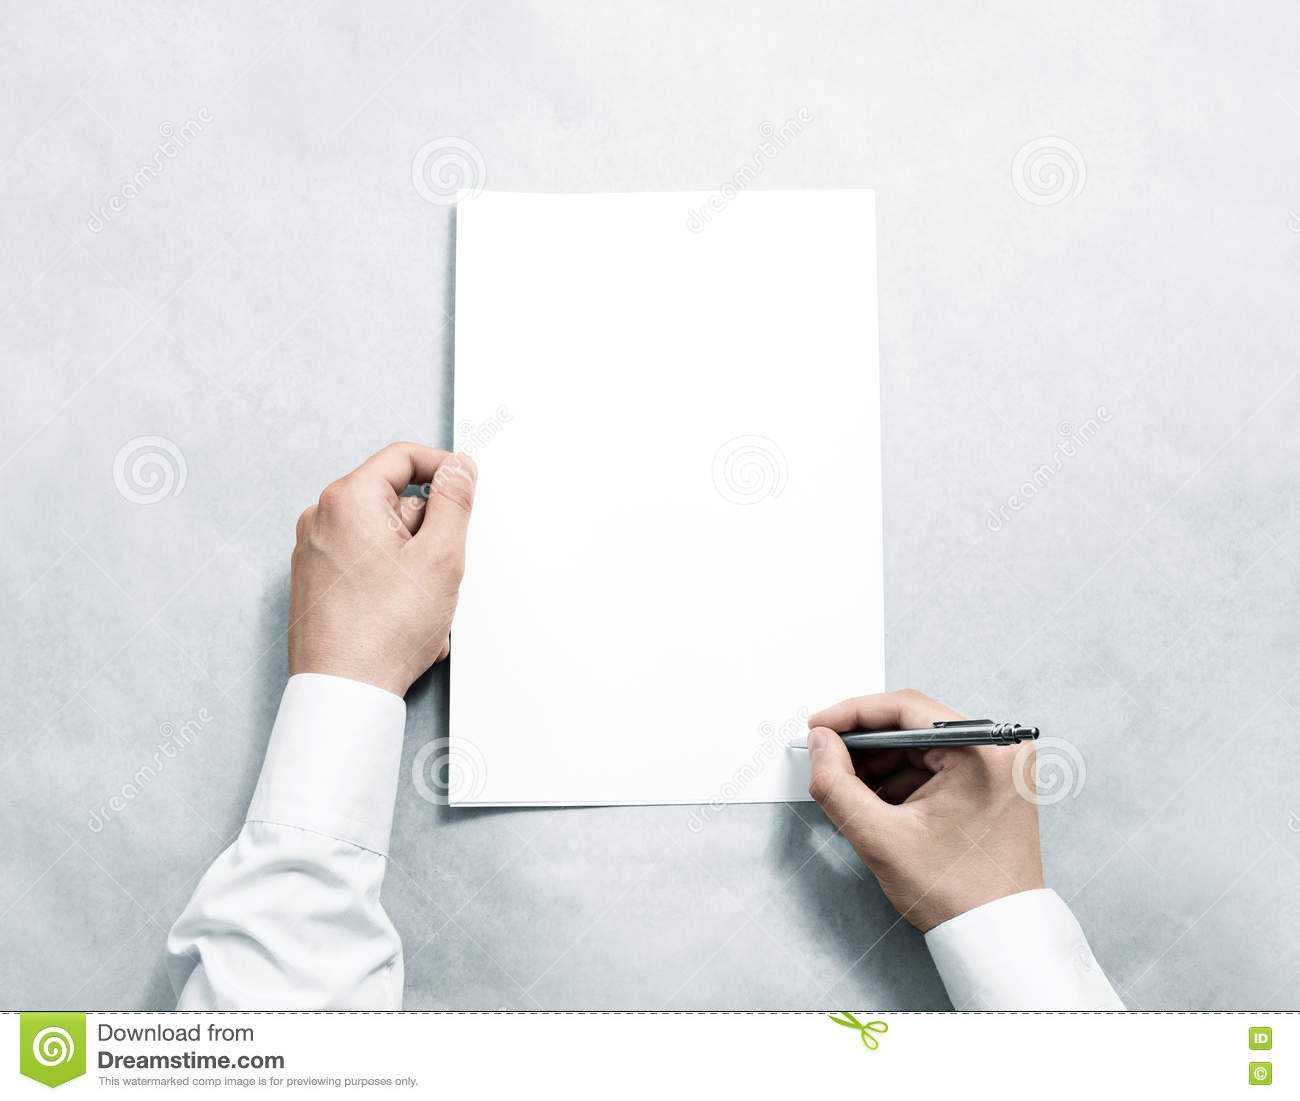 Hand Holding Blank Agreement Mockup And Signing It. Stock Inside Blank Legal Document Template